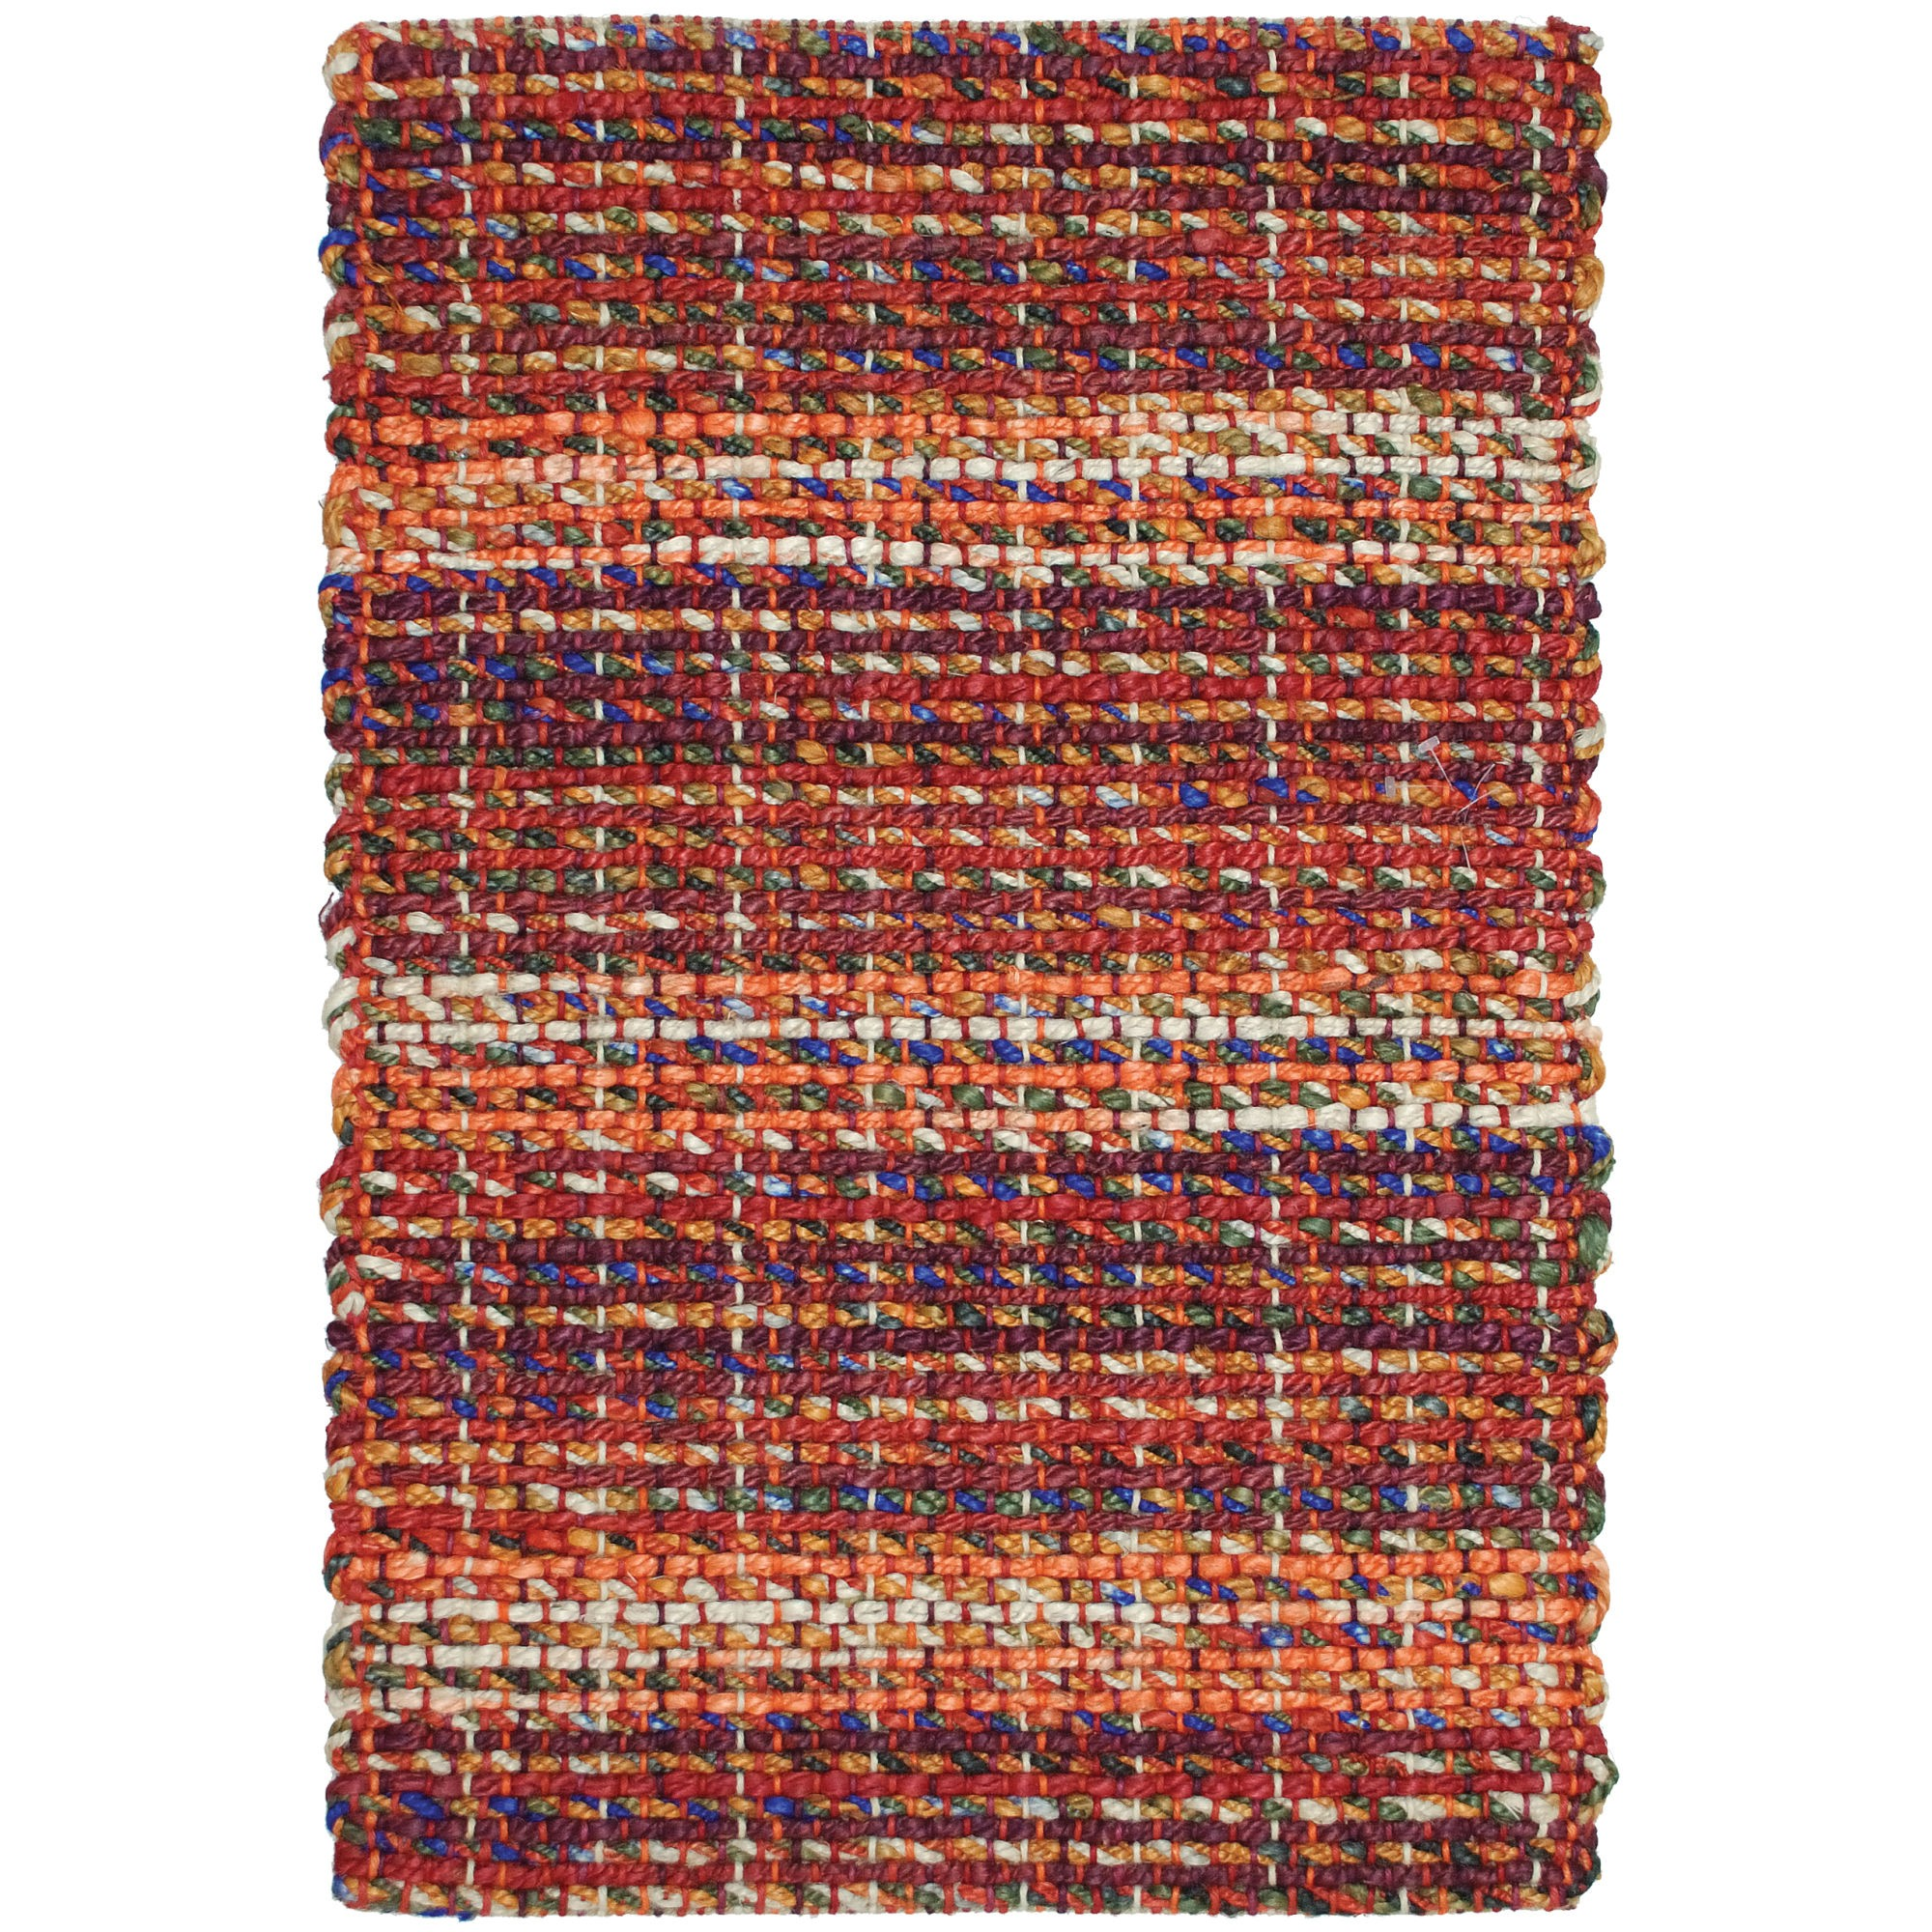 rectangle multicolor braided rugs for charming floor decor ideas